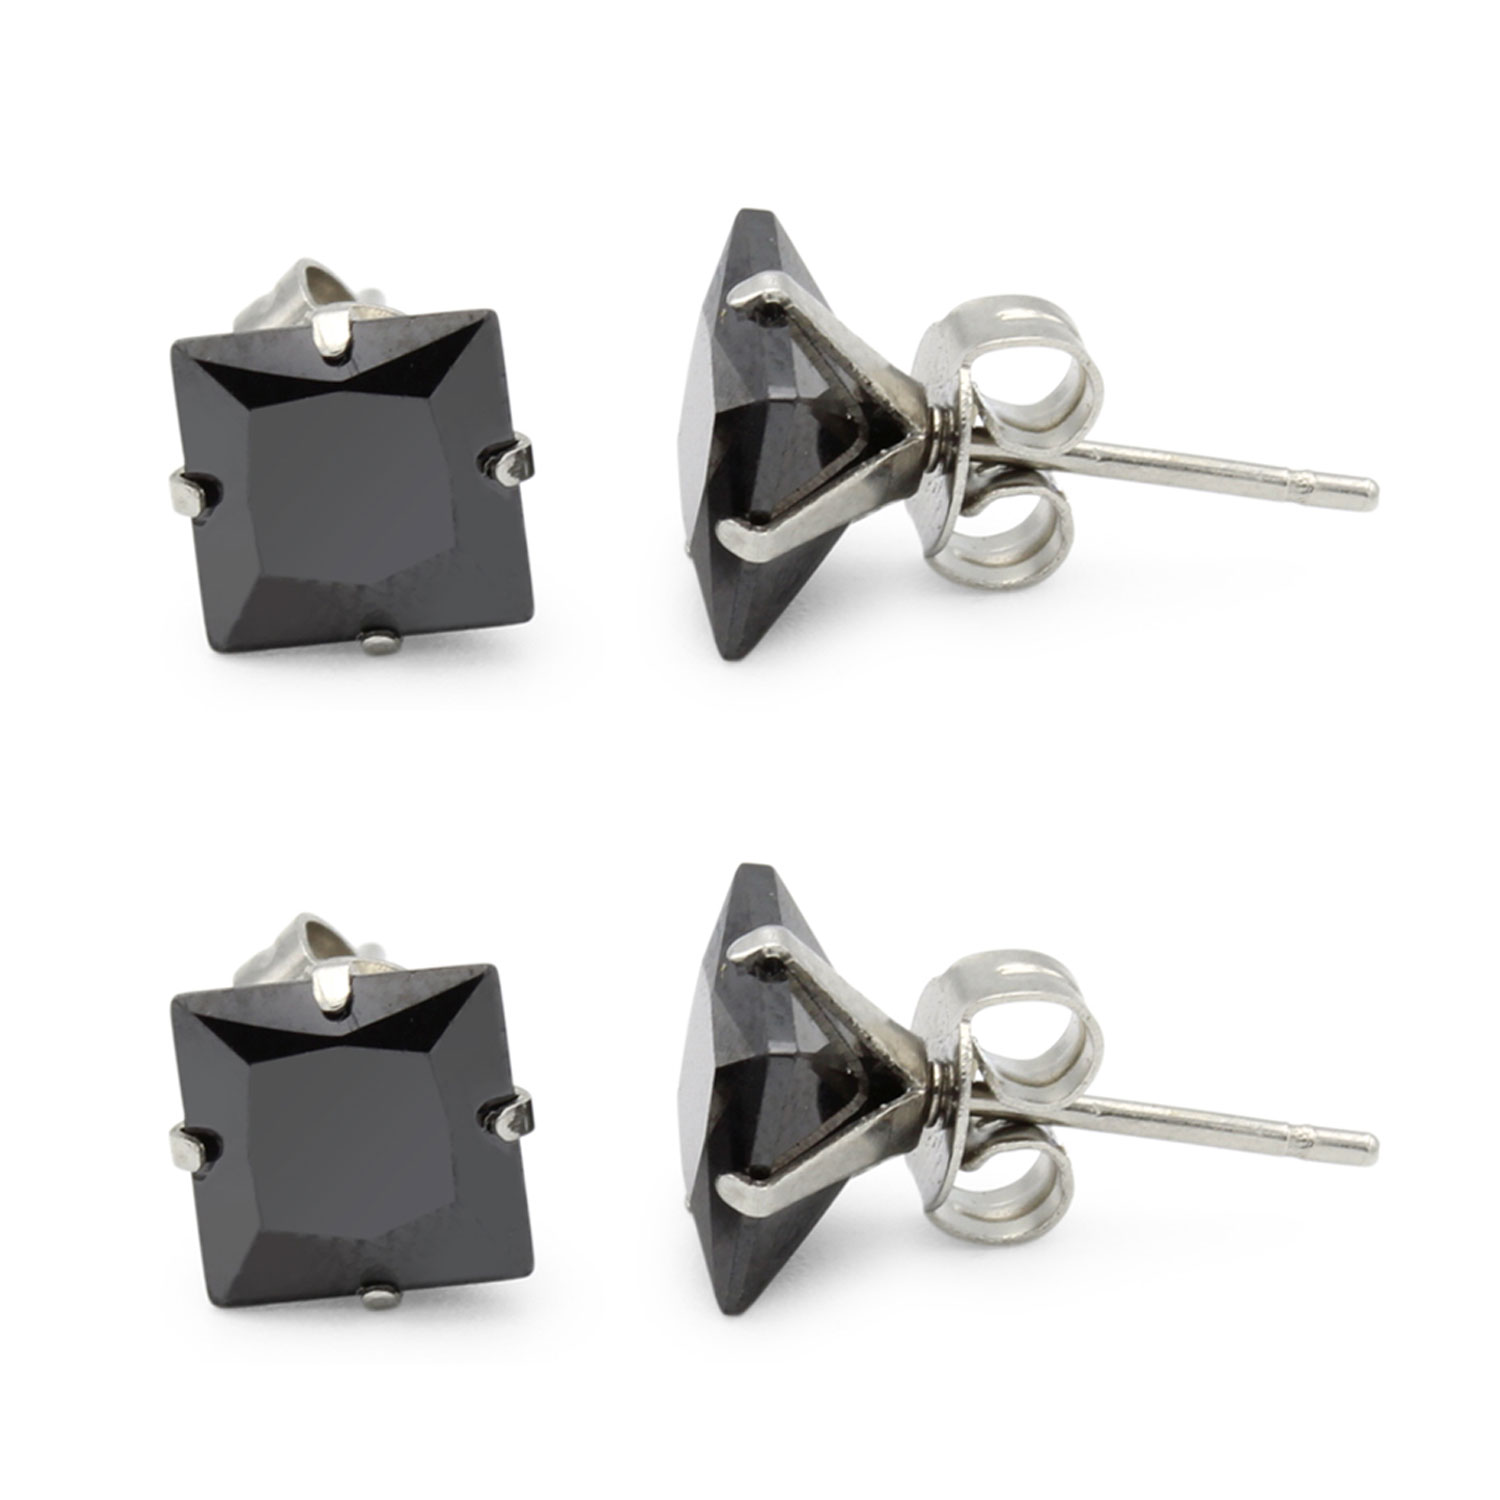 c4ecd2bcc Black Cubic Zirconia Unisex Stud Earrings Stainless Steel Jewelry  Collection Square Studs 3-10 mm